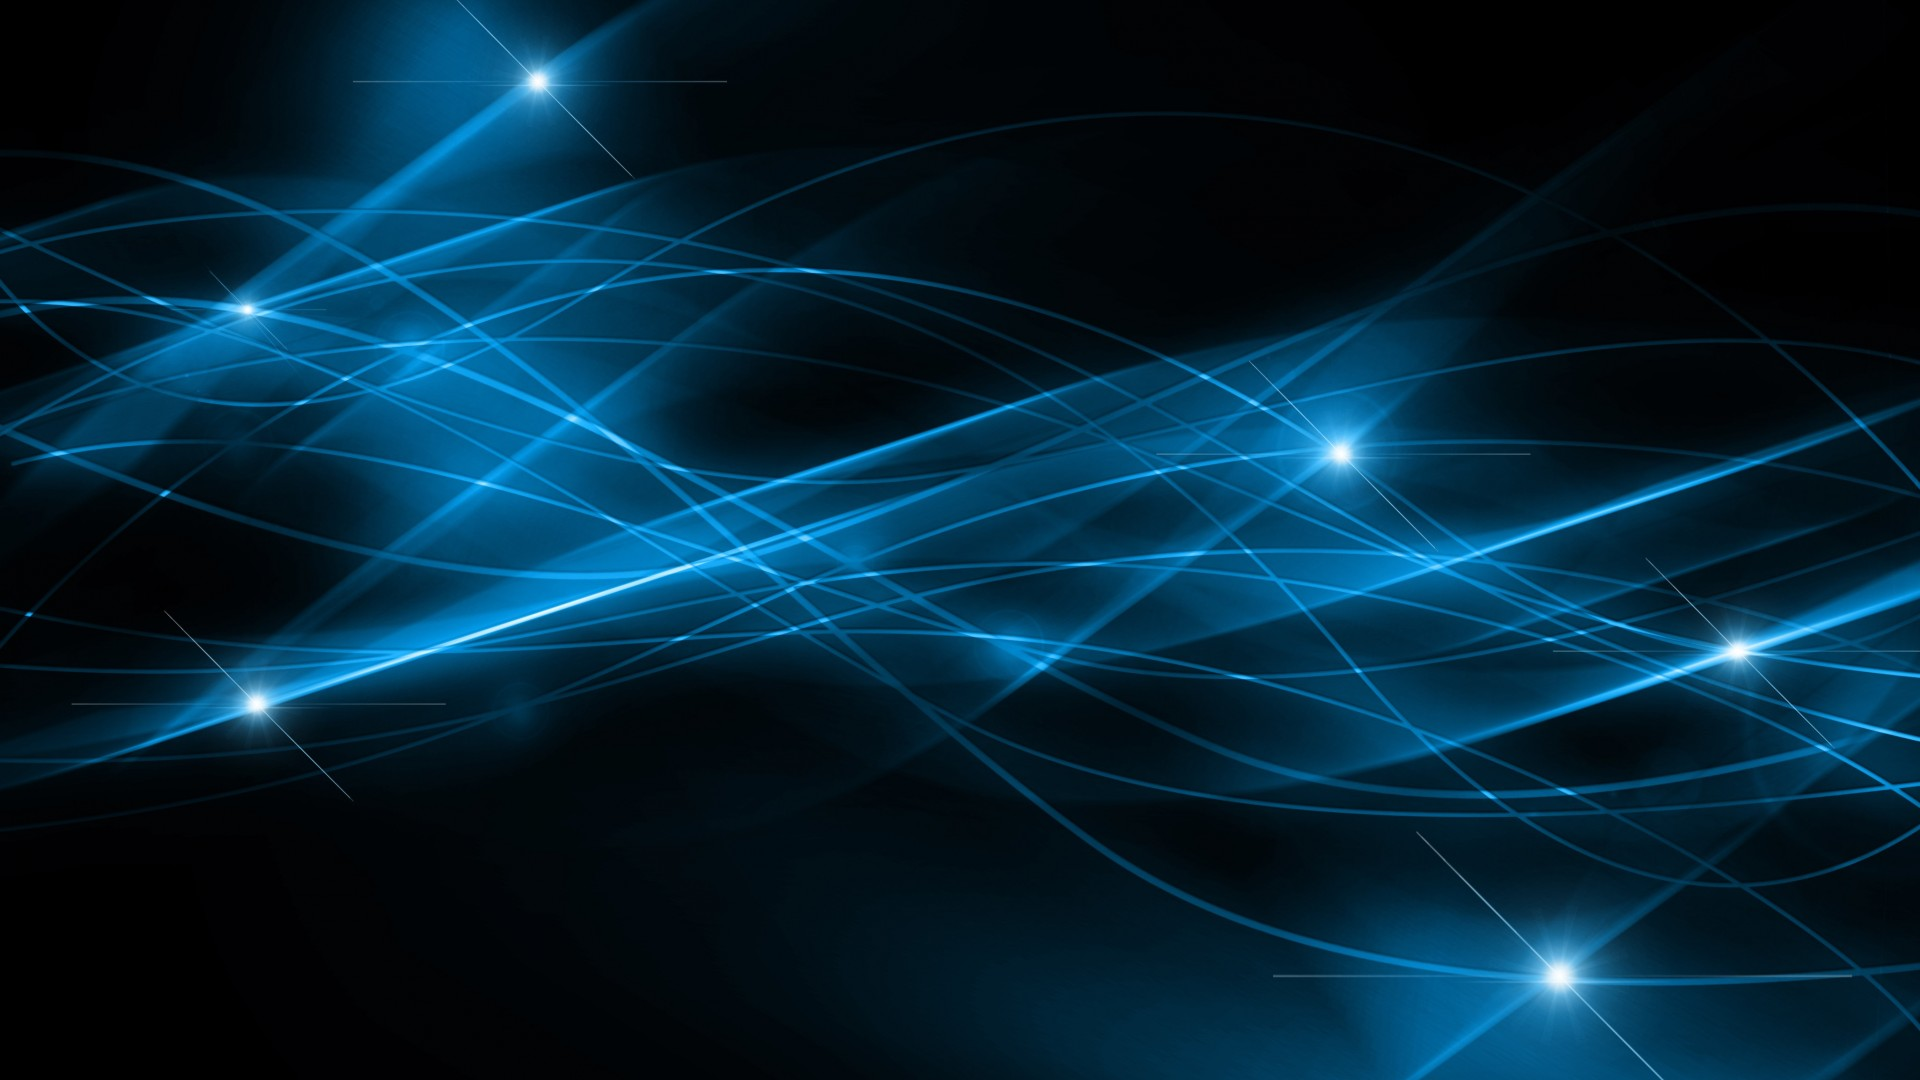 abstract wallpapers 1080p blue - photo #5